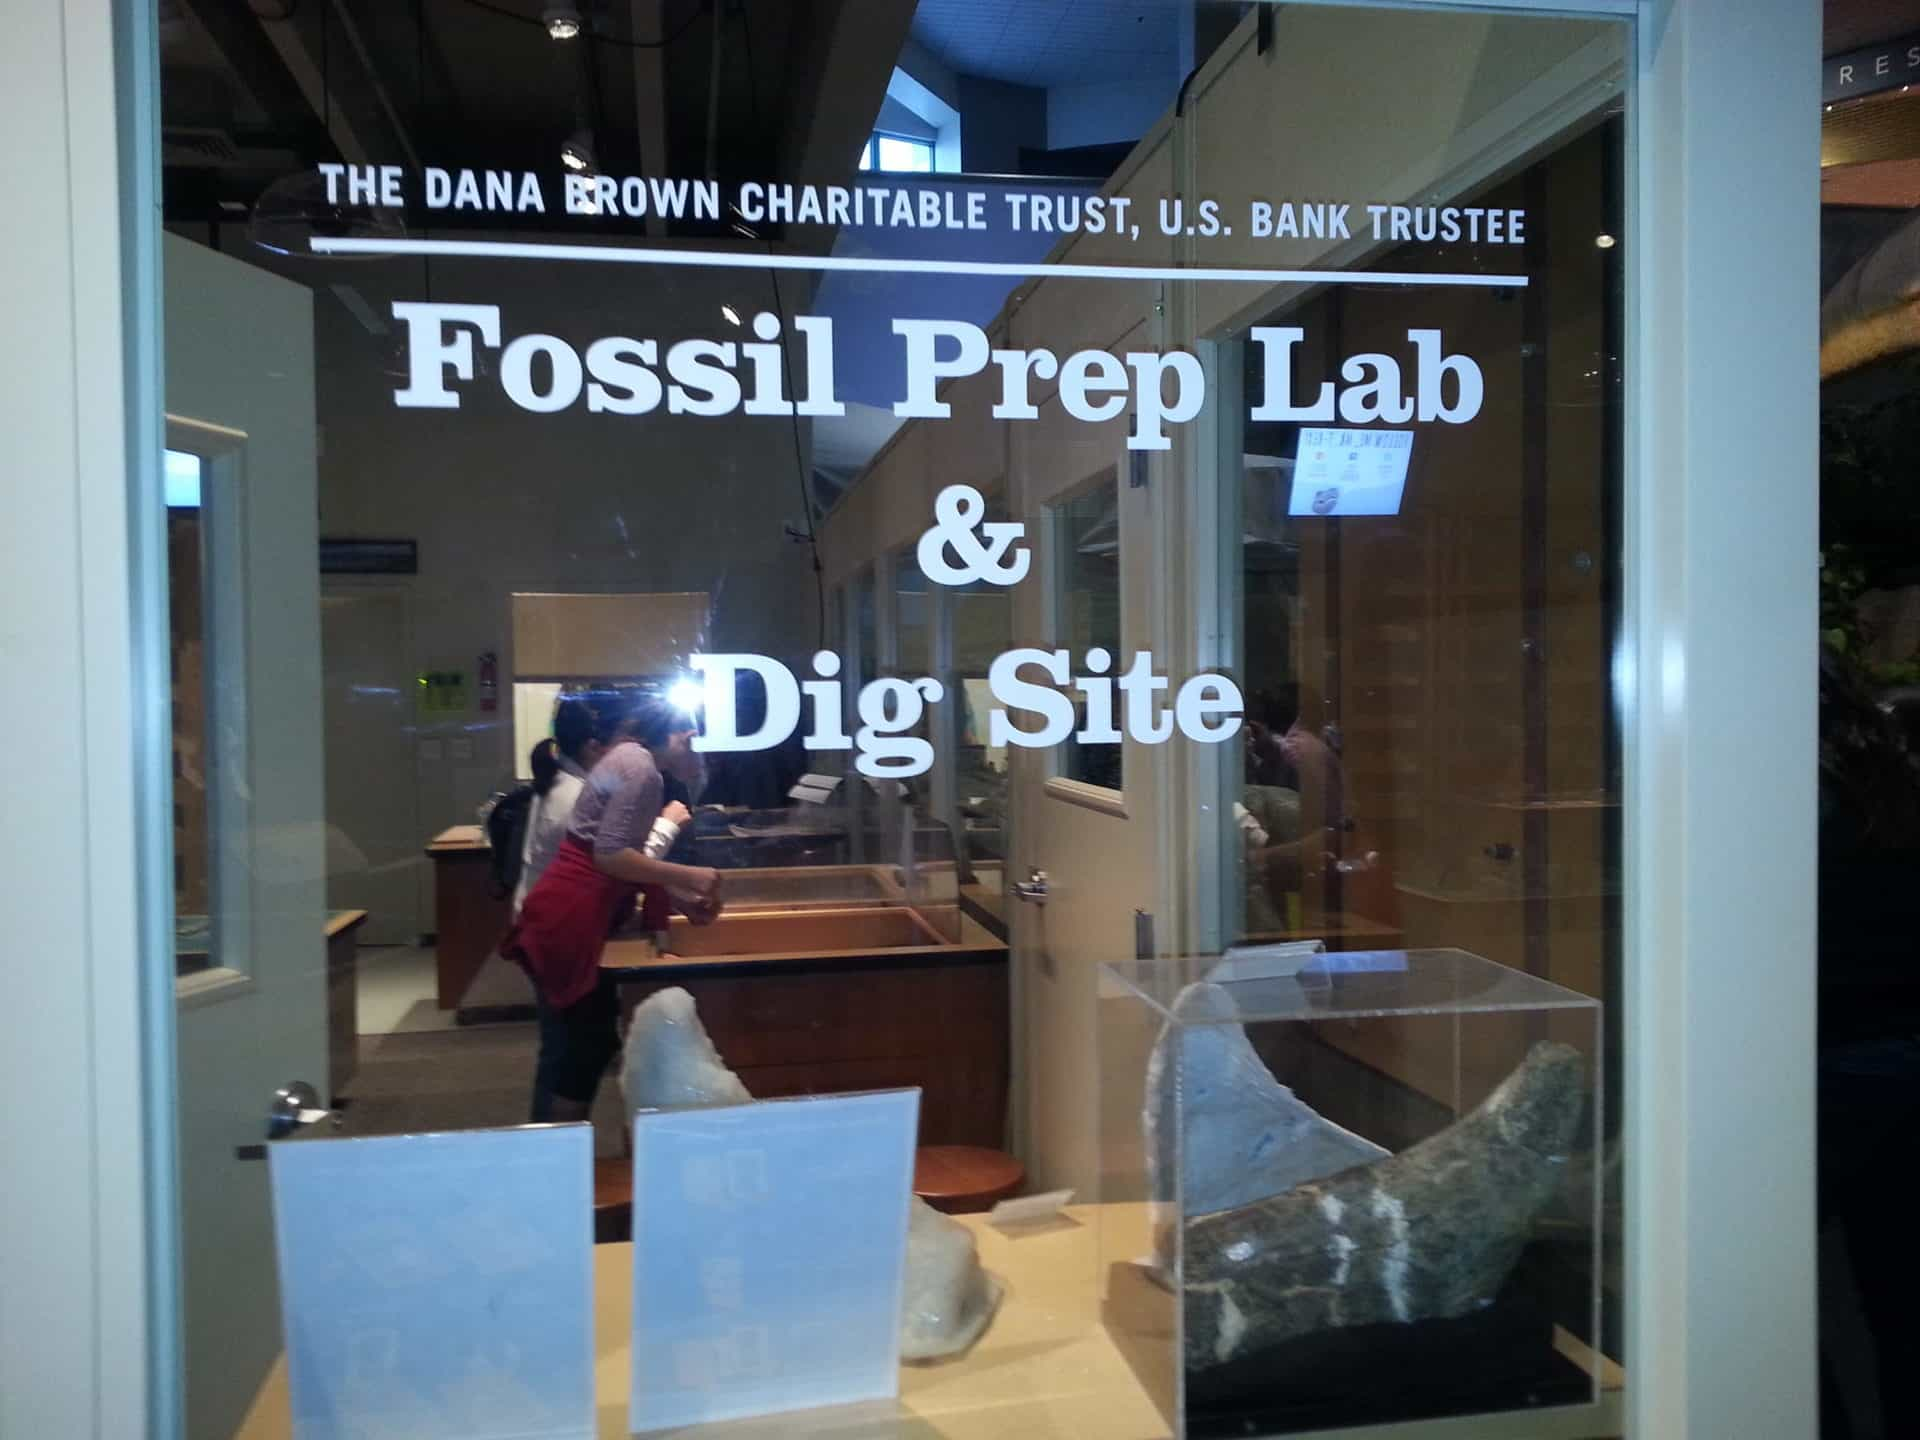 St Louis Science Center - Fossil Prep Lab